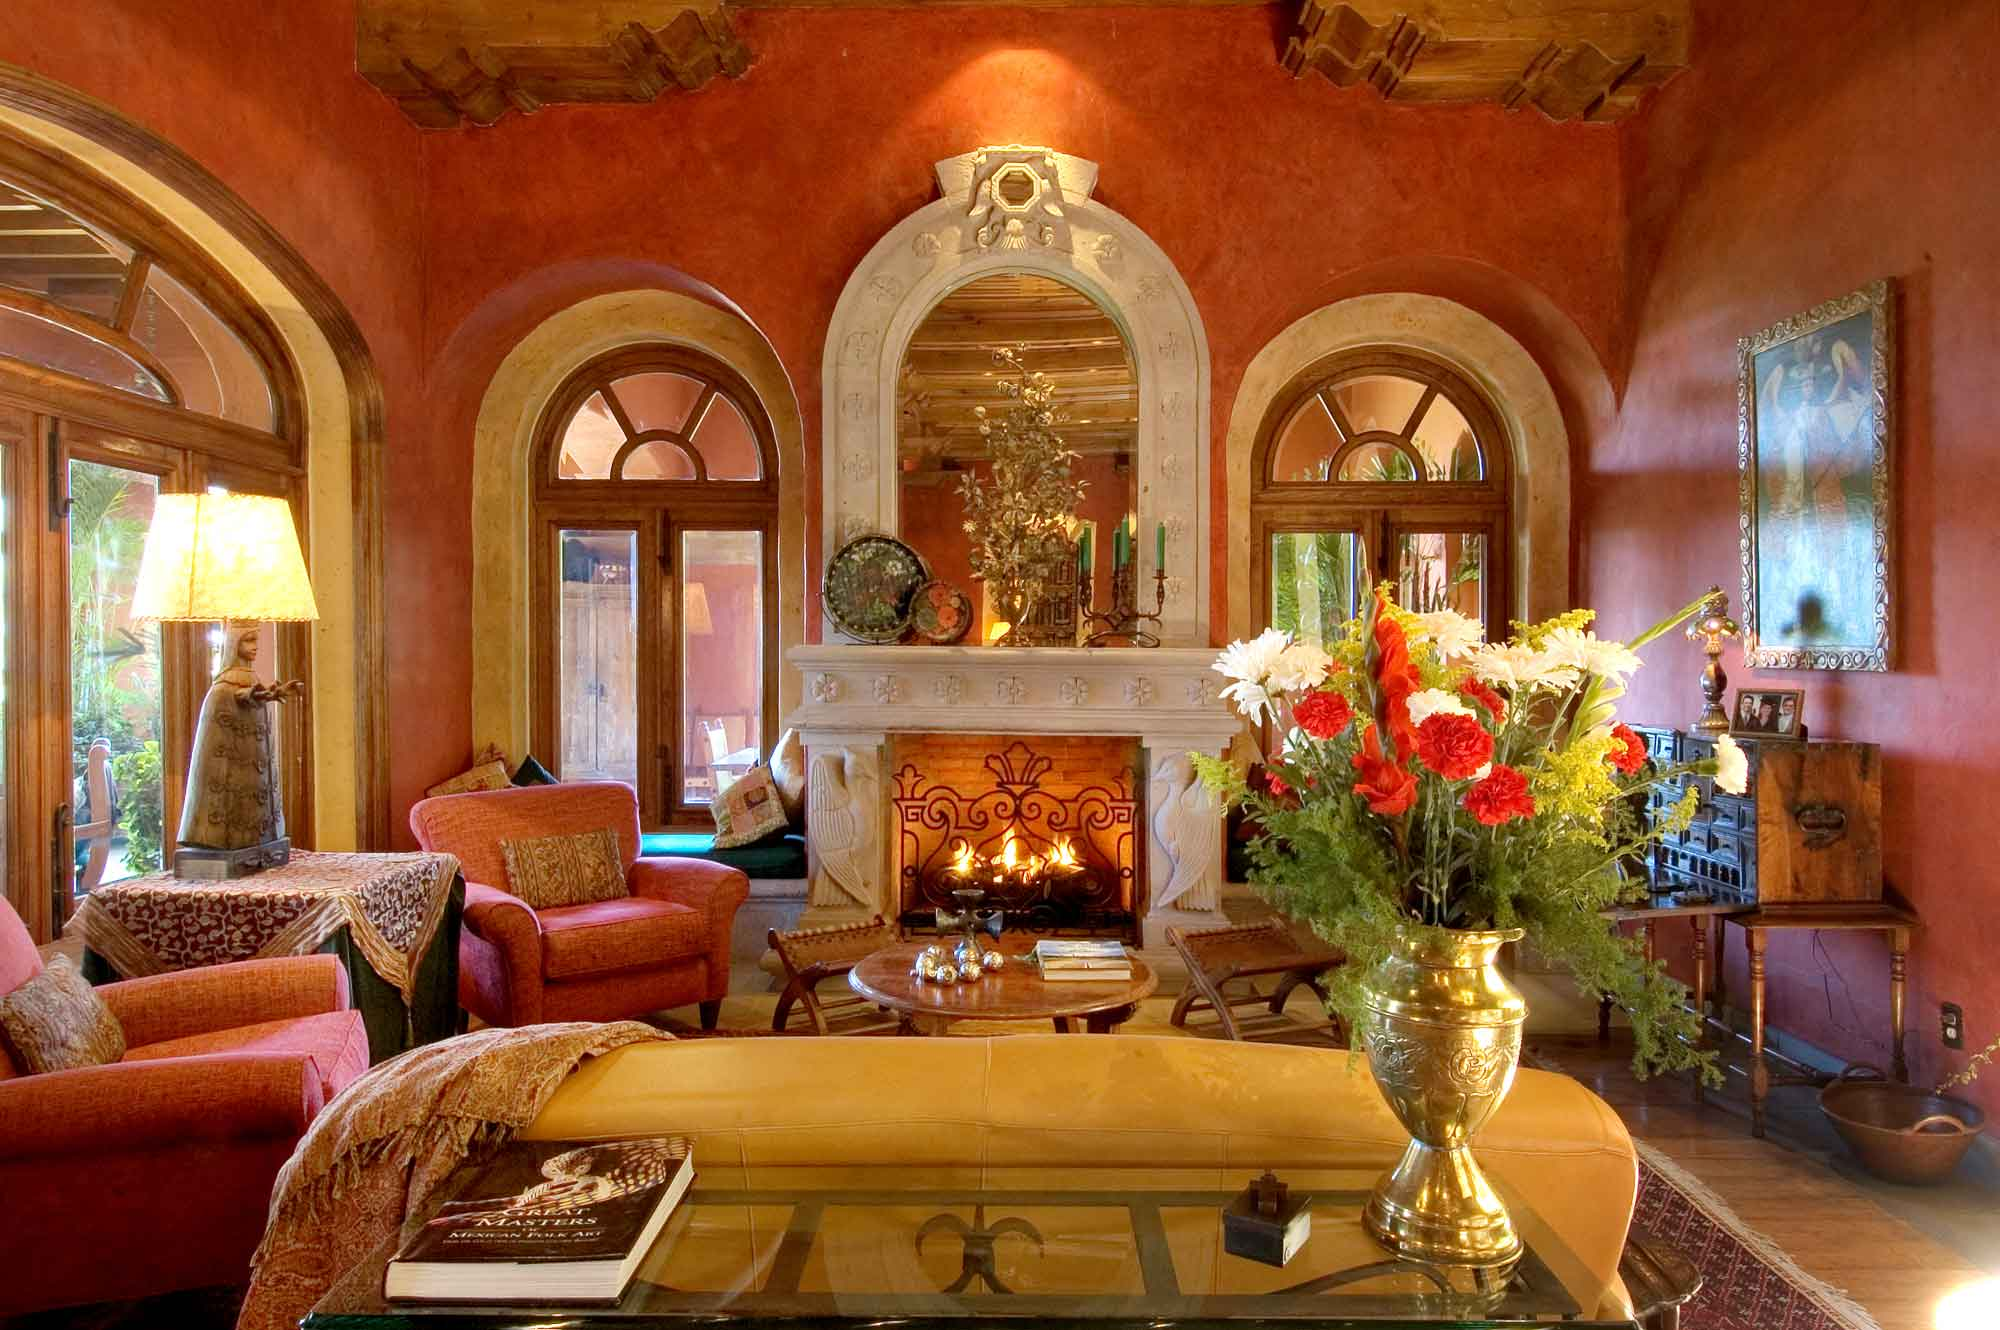 Casa Heyne, an enchanting hilltop hacienda in San Miguel de Allende, has an abundance of decorative windows, designed to infuse the interiors with sunlight and frame breathtaking views of the tropical landscape.